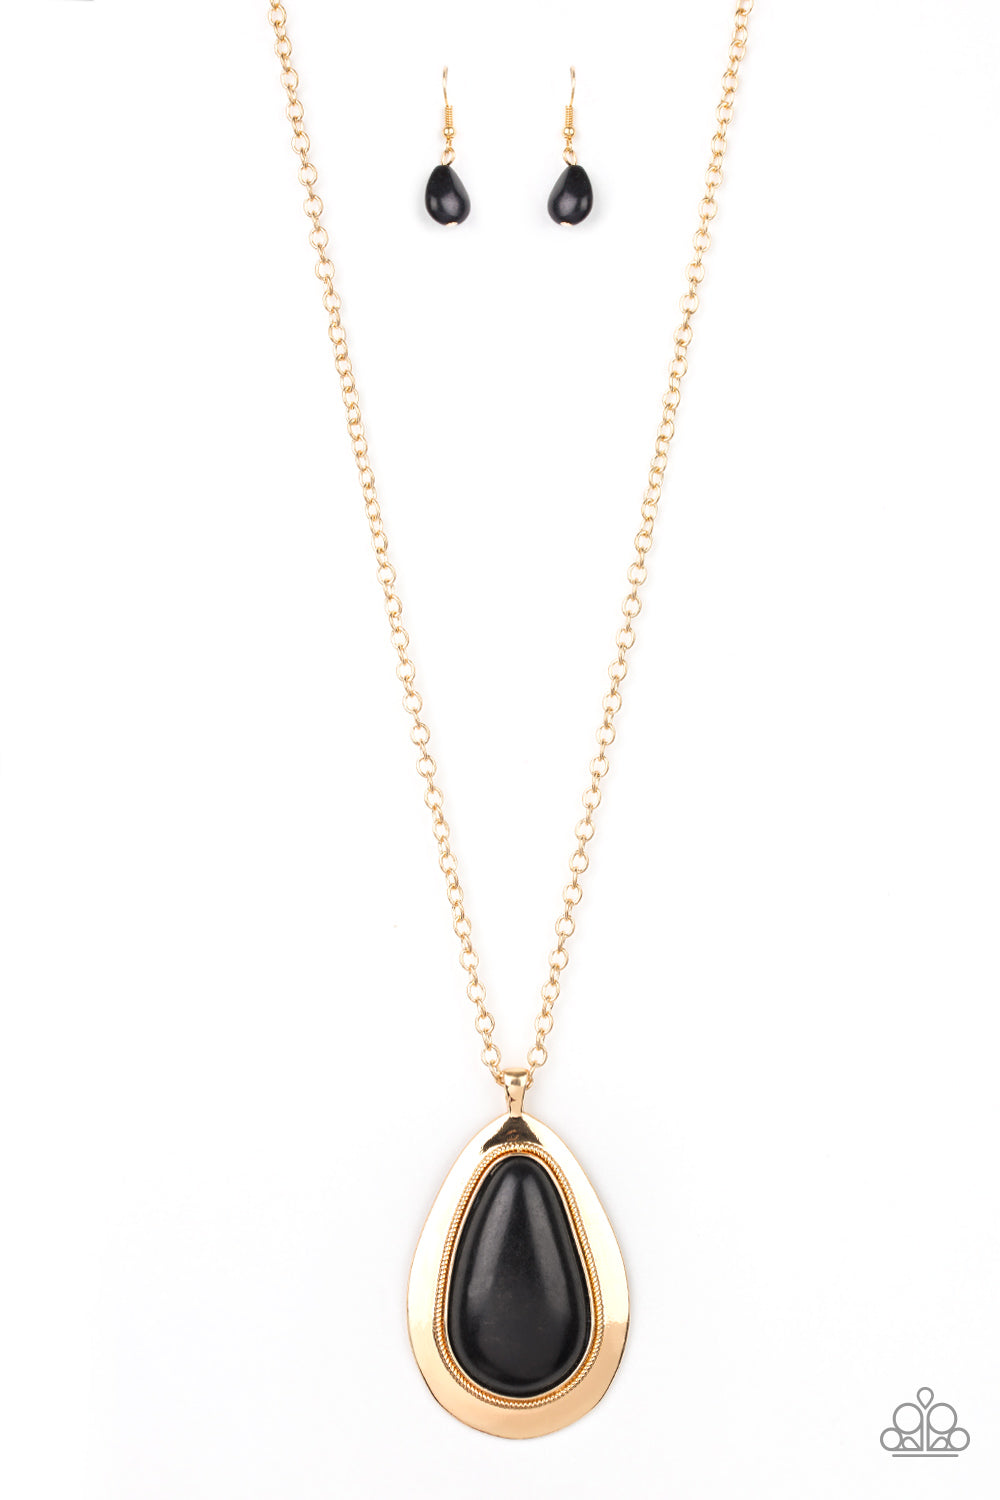 """BADLAND To The Bone - Gold"" Black Teardrop Stone Necklace & Earrings Set"